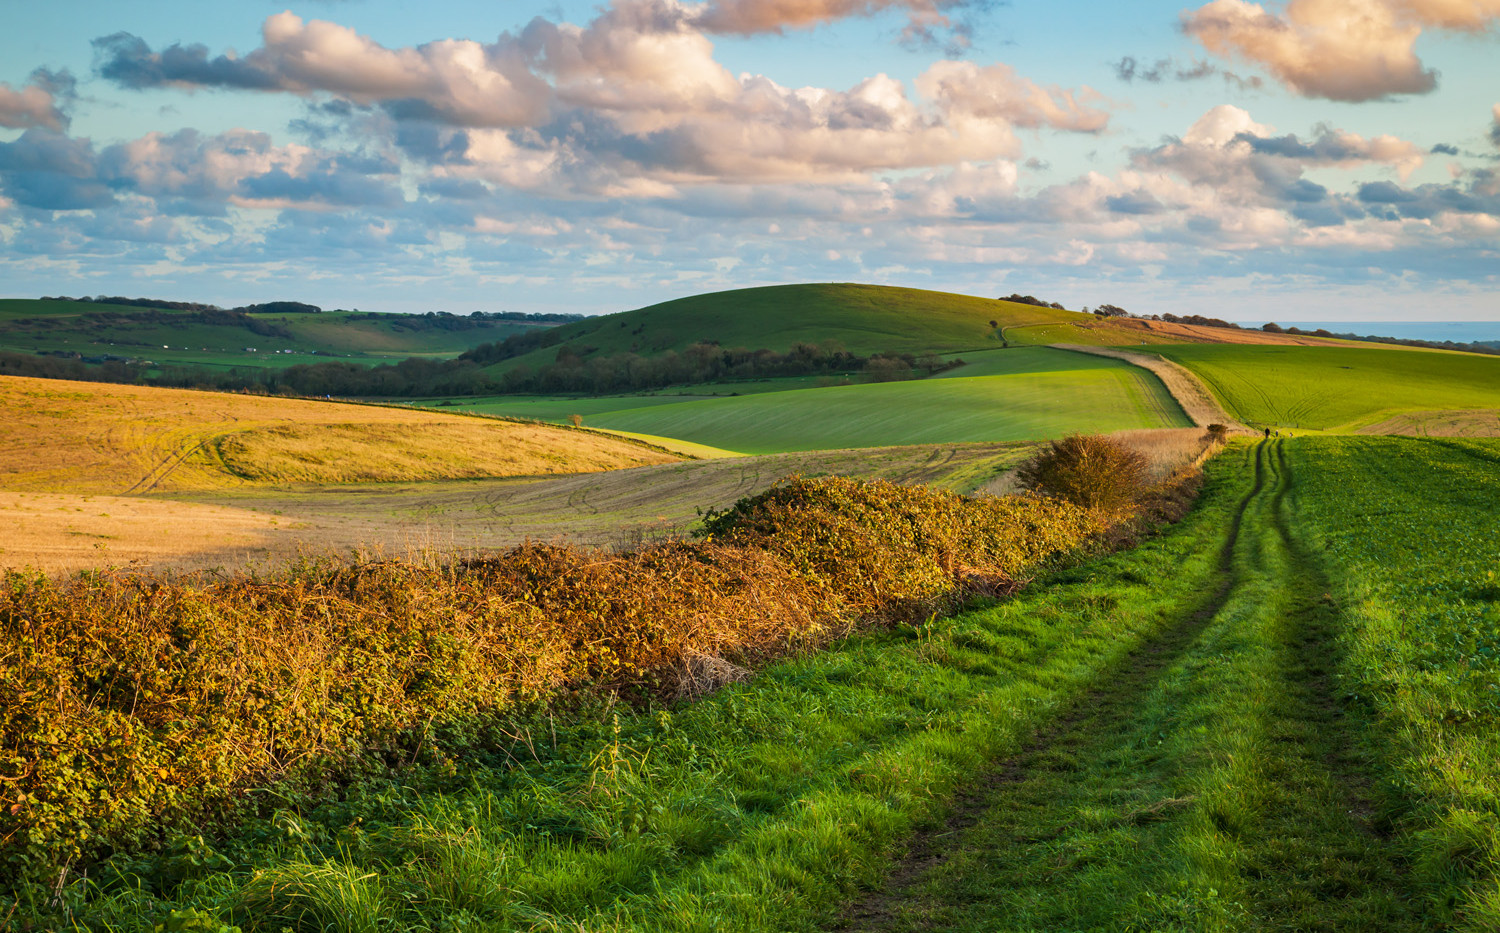 South Downs near Storrington, West Sussex, 6th November 2017